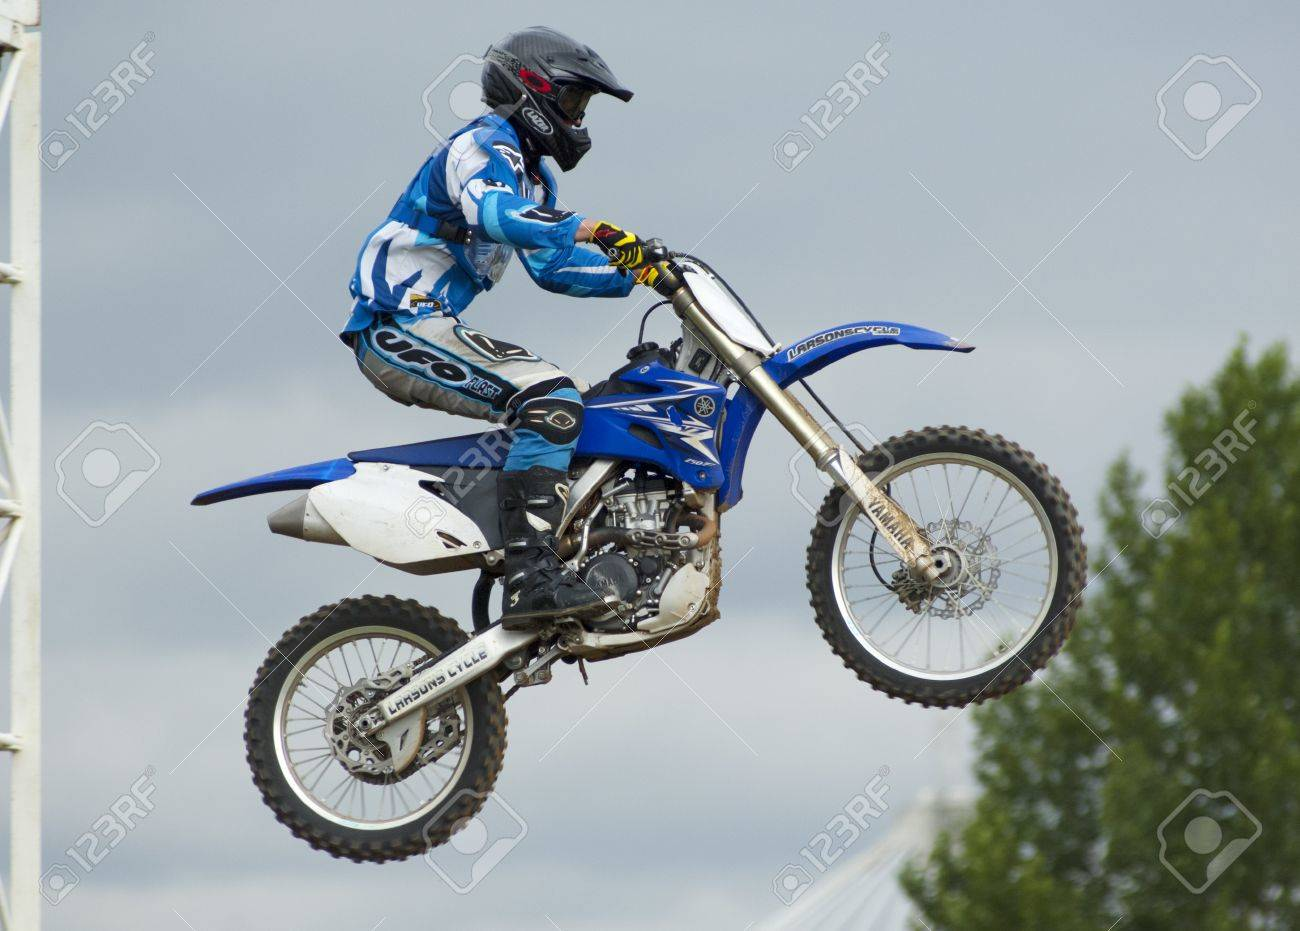 MOSCOW - JUNE 24  P Silaev on a clubs tournament of motocross competition of Red Racing Group club on June 24, 2012 in Moscow, Krilatskoe, Russia Stock Photo - 16233327